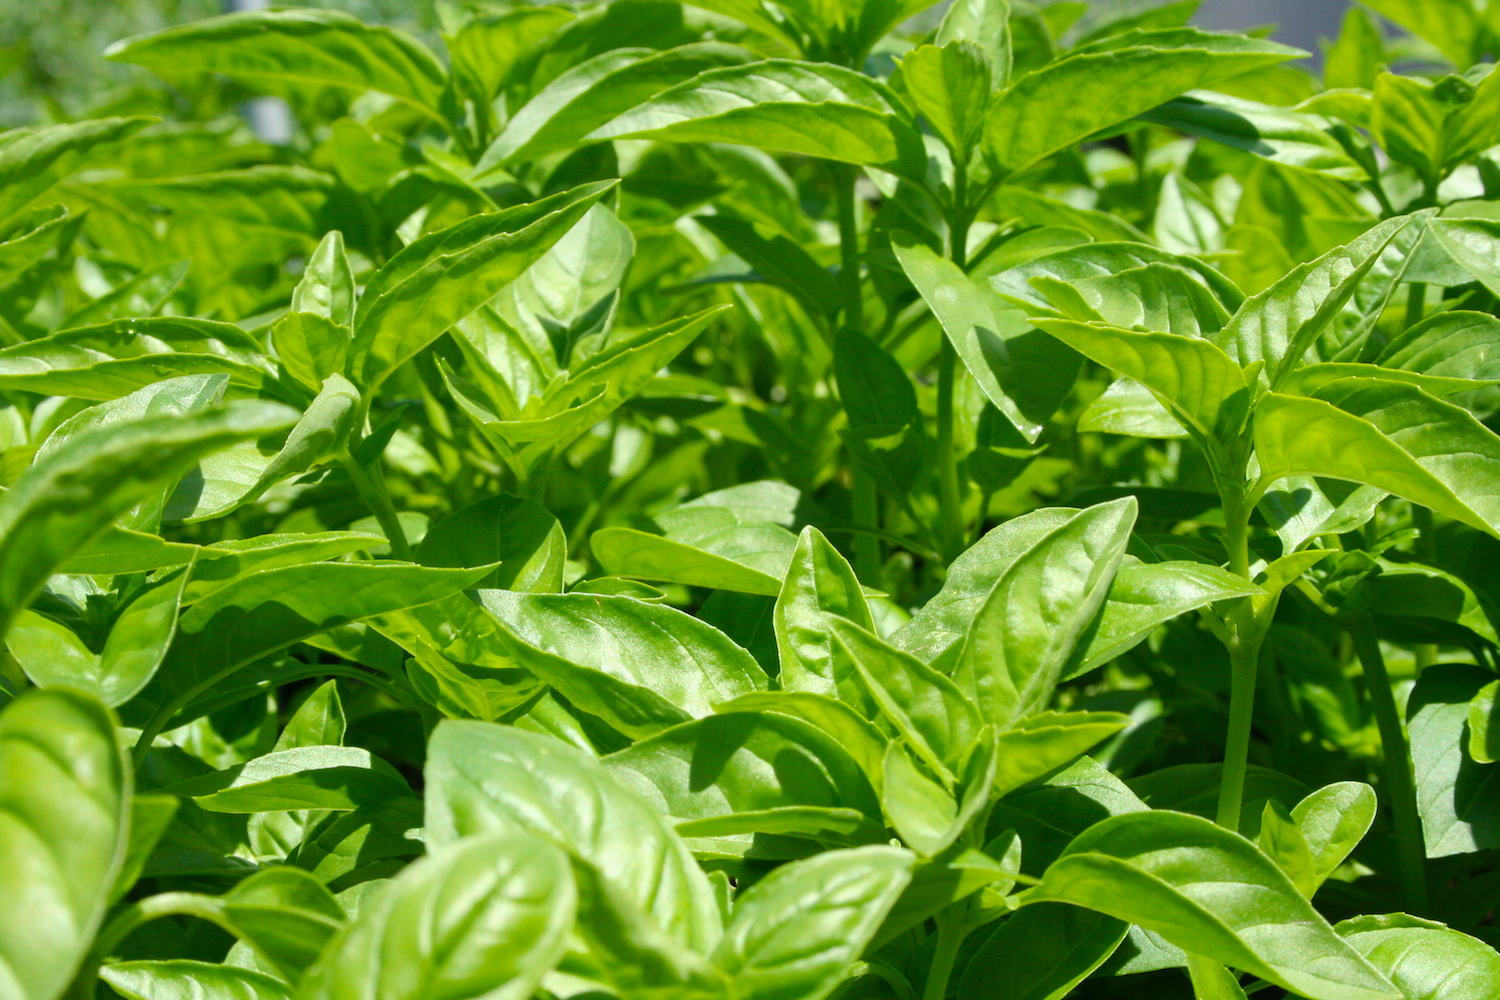 The incomparable Superbo Italian Basil boasts intense, sweet, savory ambrosial flavor!